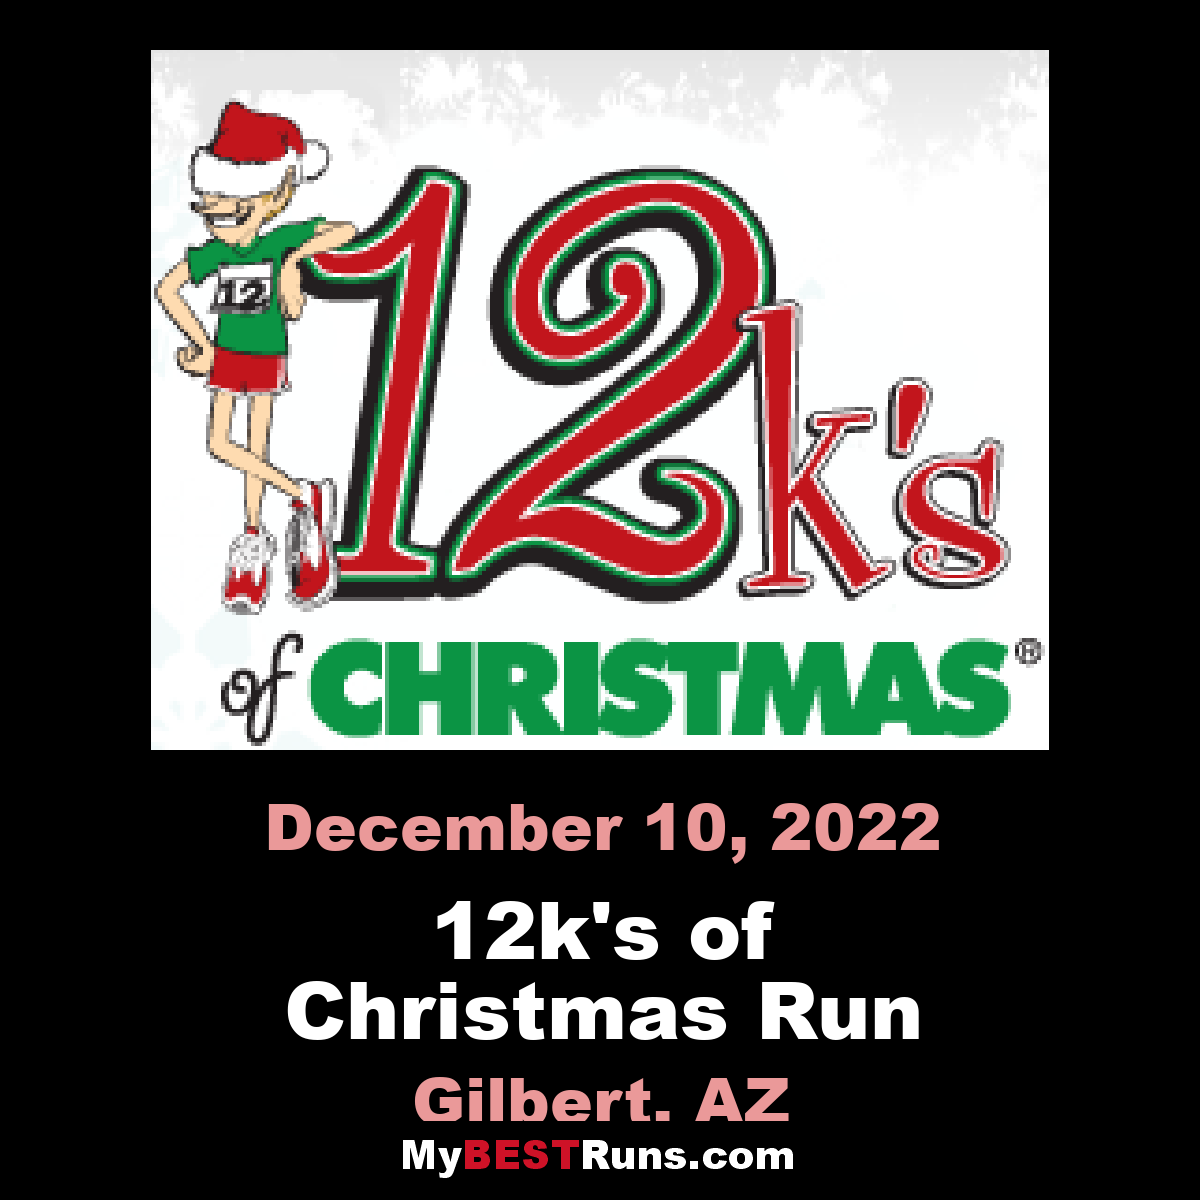 12k's of Christmas Run